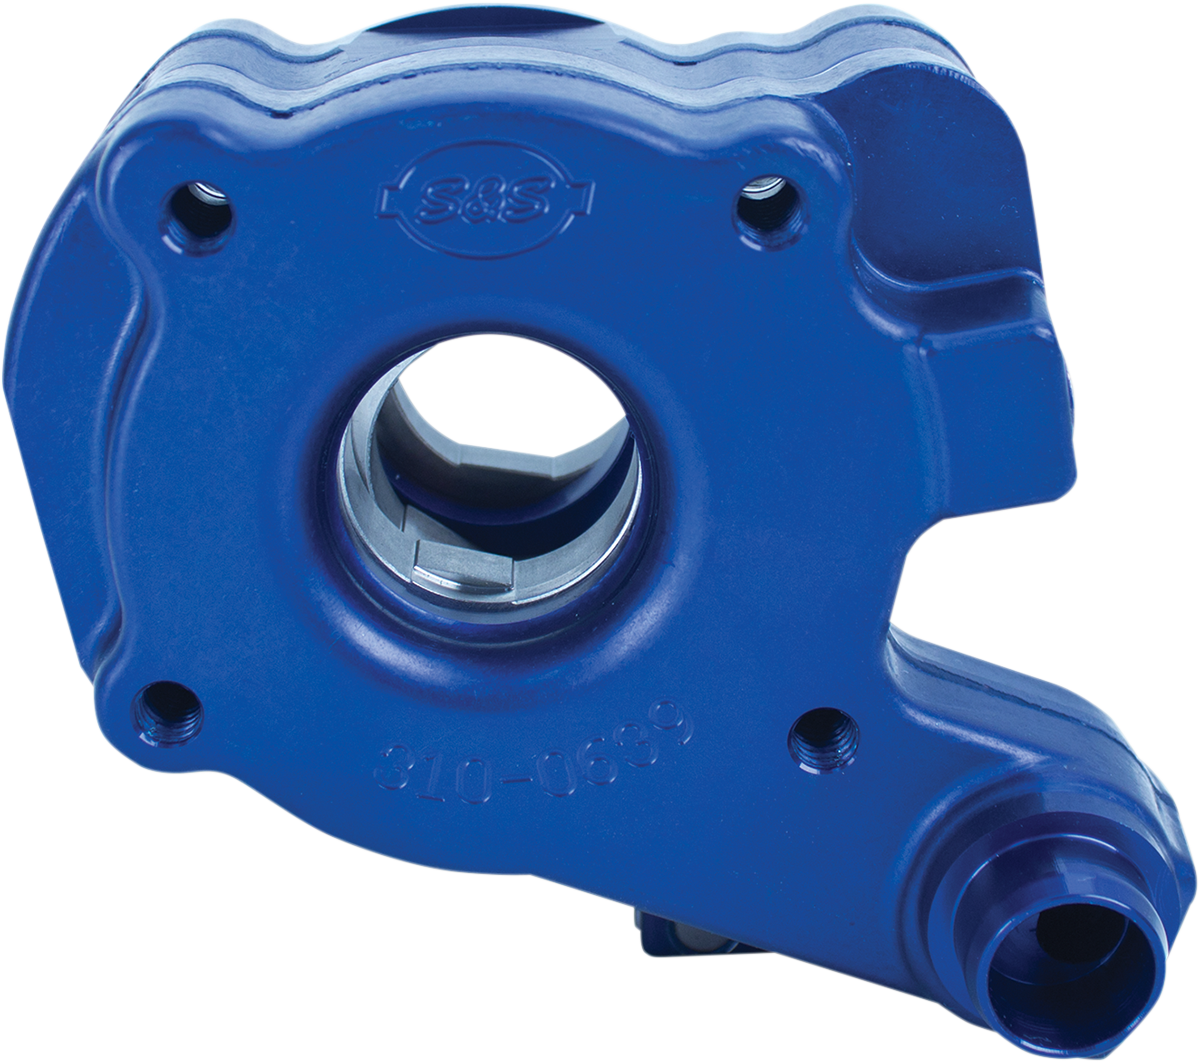 S&S Blue TC3 Chain Gear Oil Pump for 06-17 Harley Dyna Touring Softail Rocker